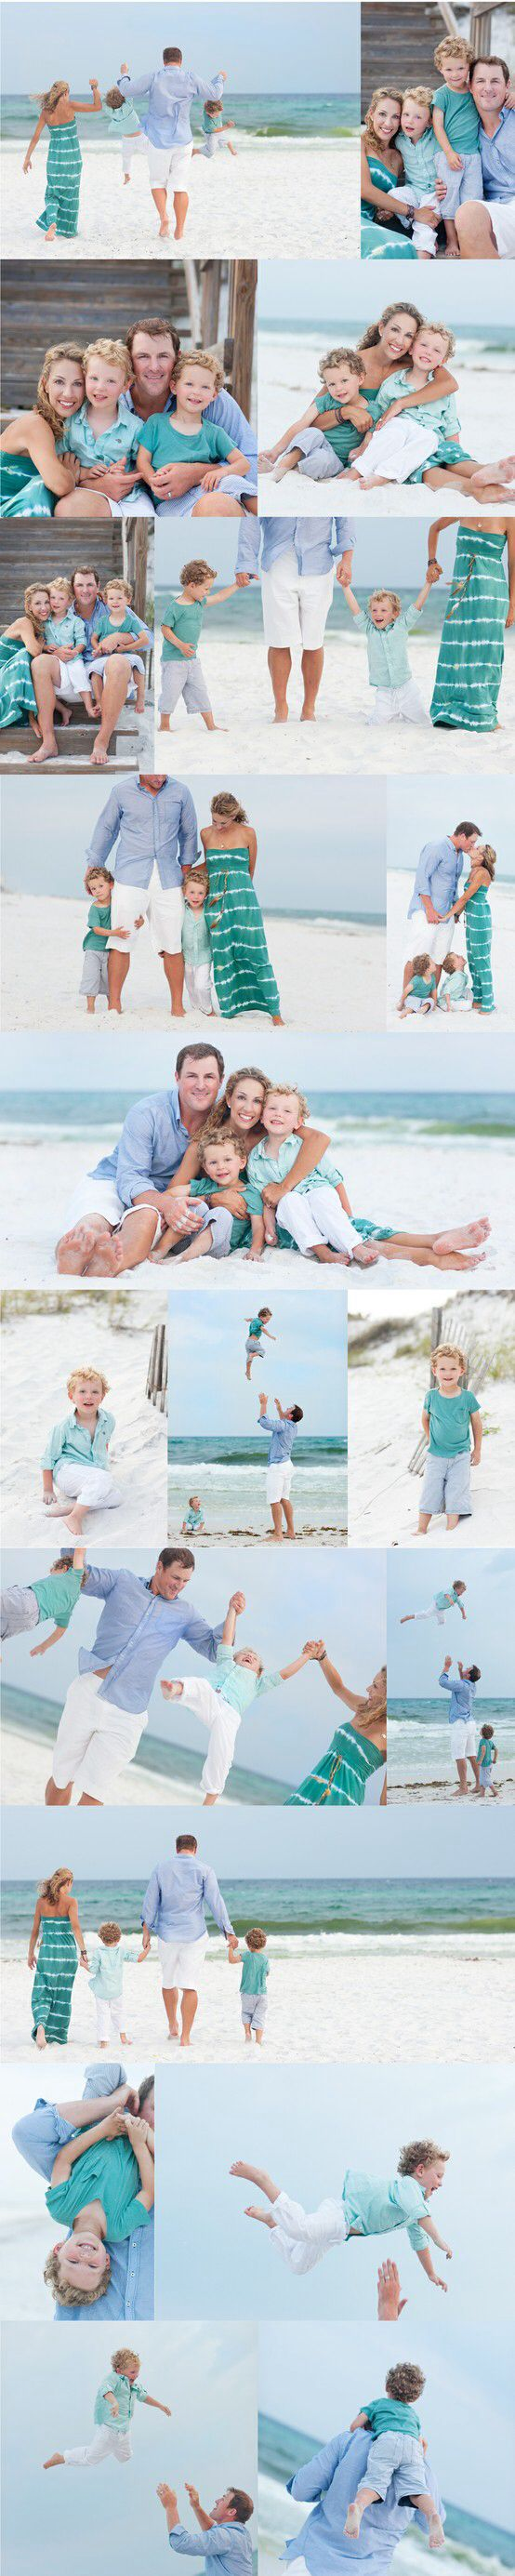 Family of four, playing, beach, close in shots